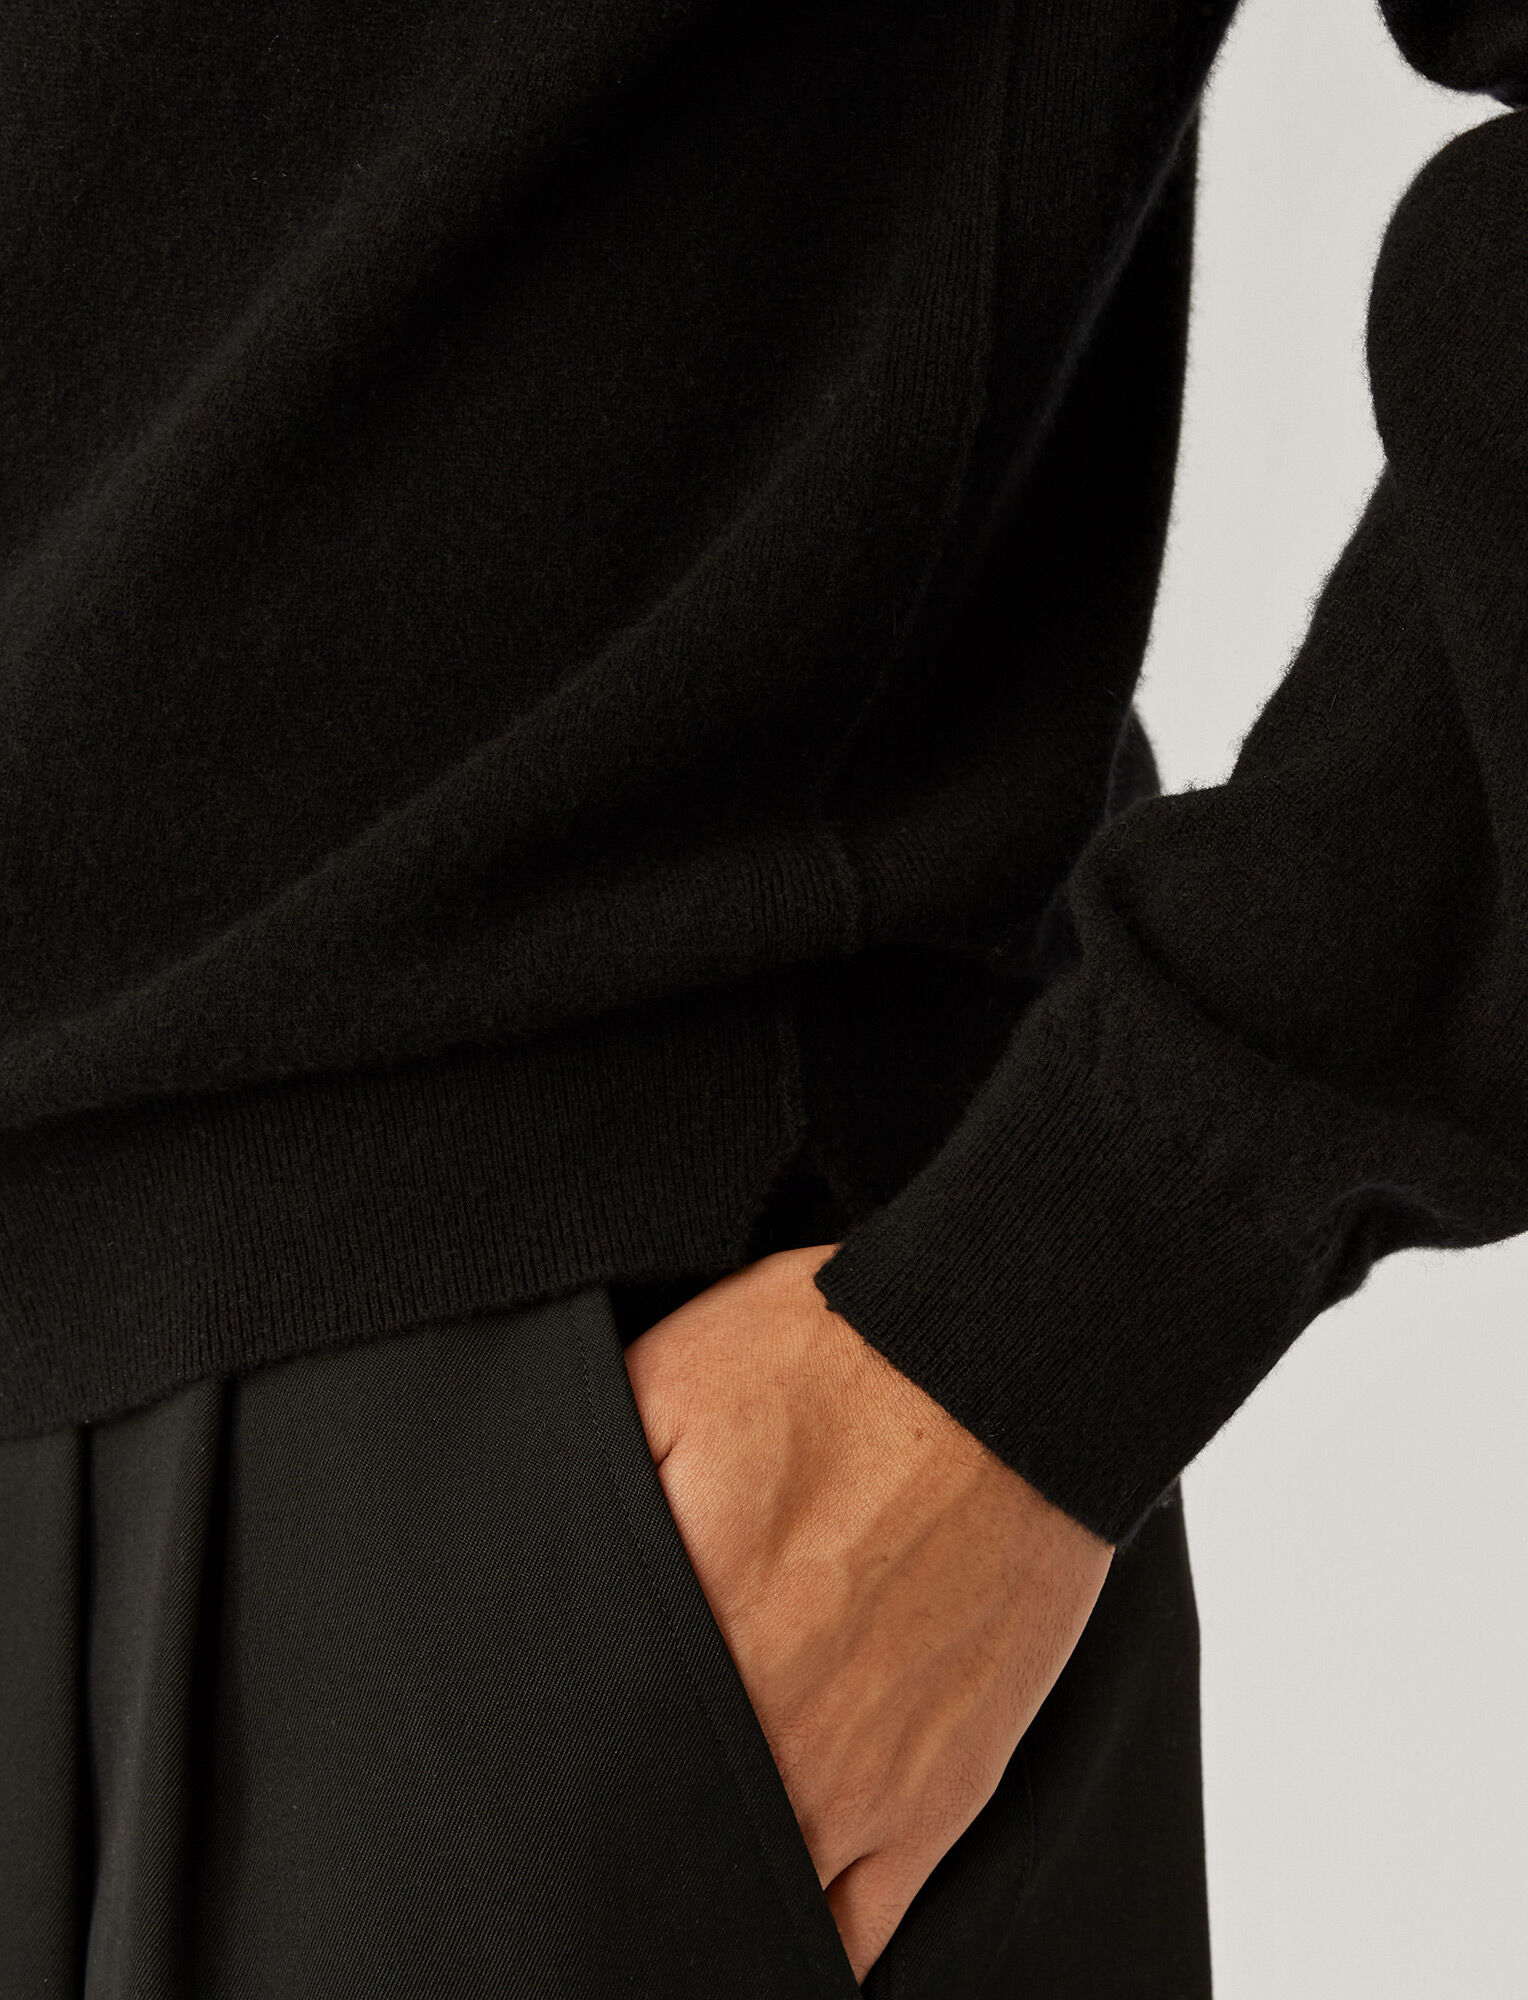 Joseph, Cashmere Knit, in Black